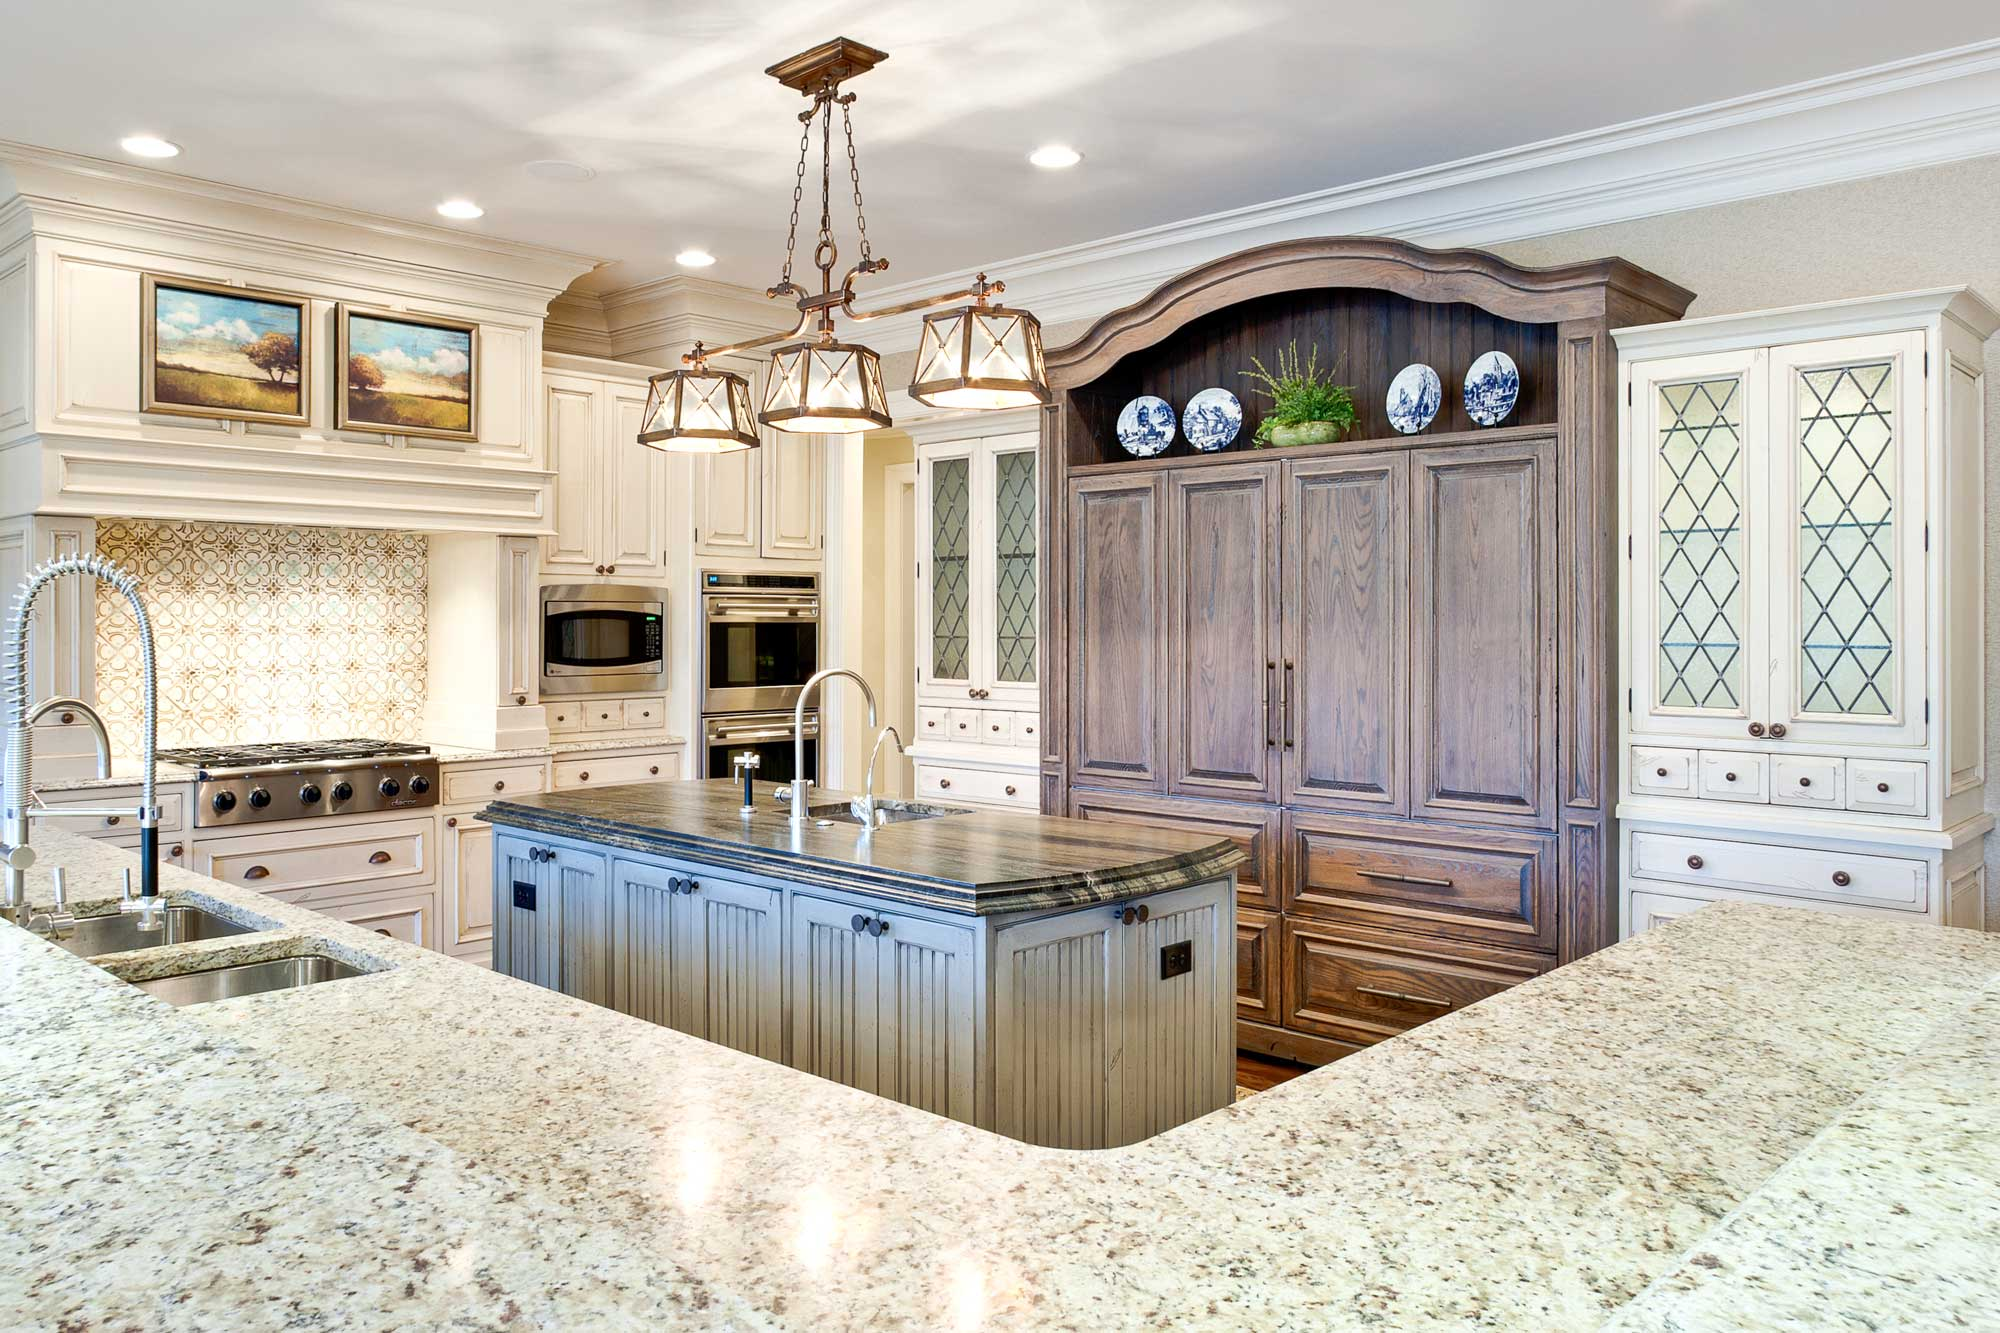 kitchen design center la habra kitchen design center talentneeds 991